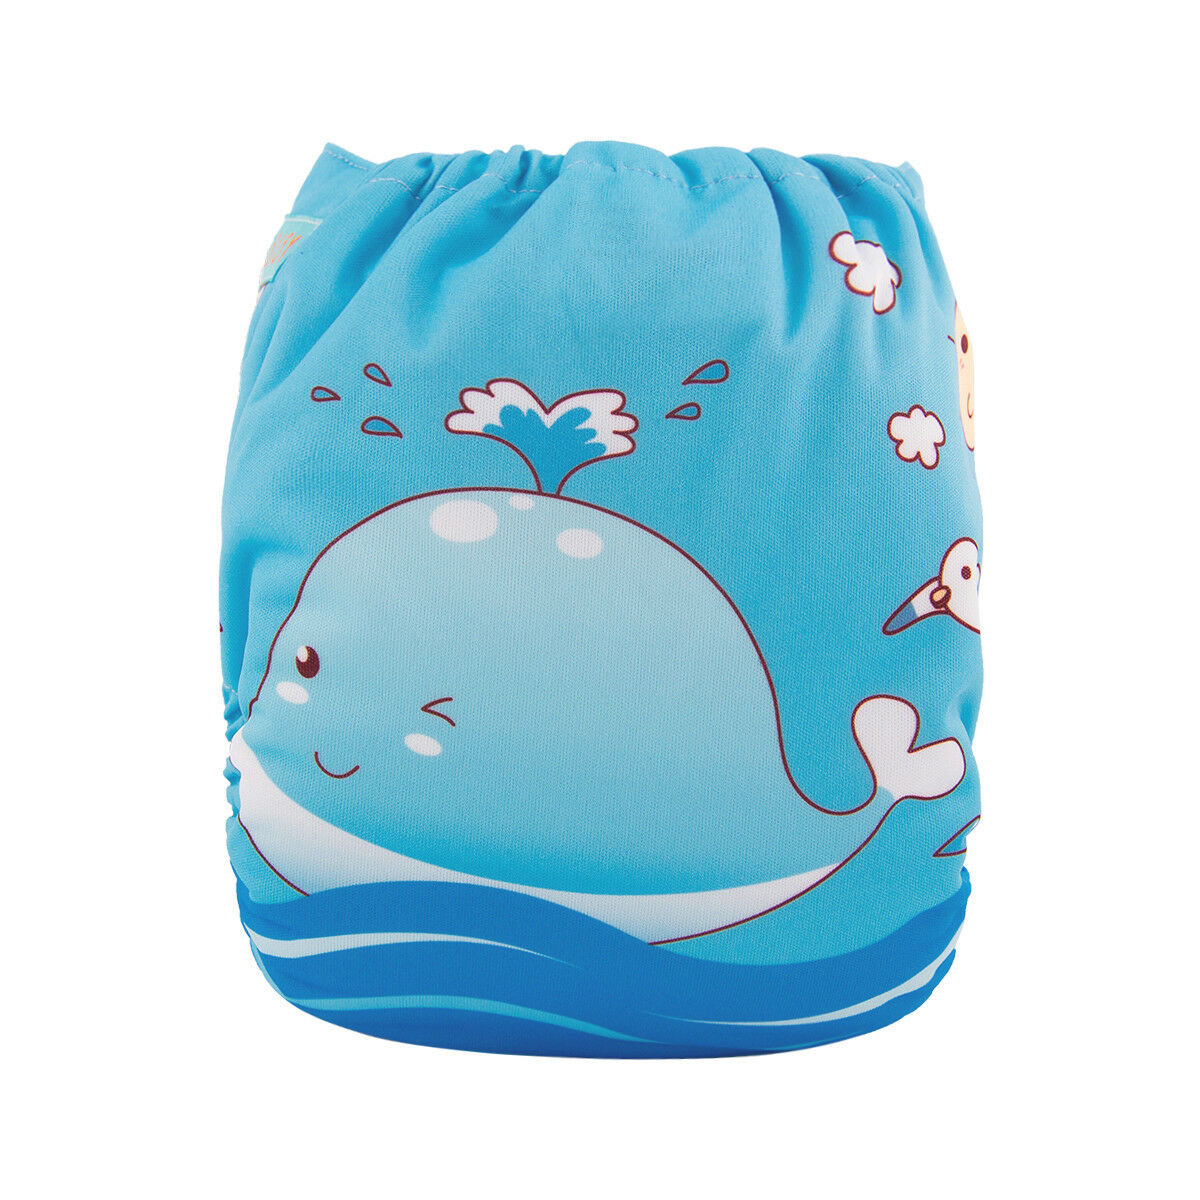 ALVABABY Reusable Baby Cloth Diapers OneSize Washable Pocket Nappies With Insert YD136